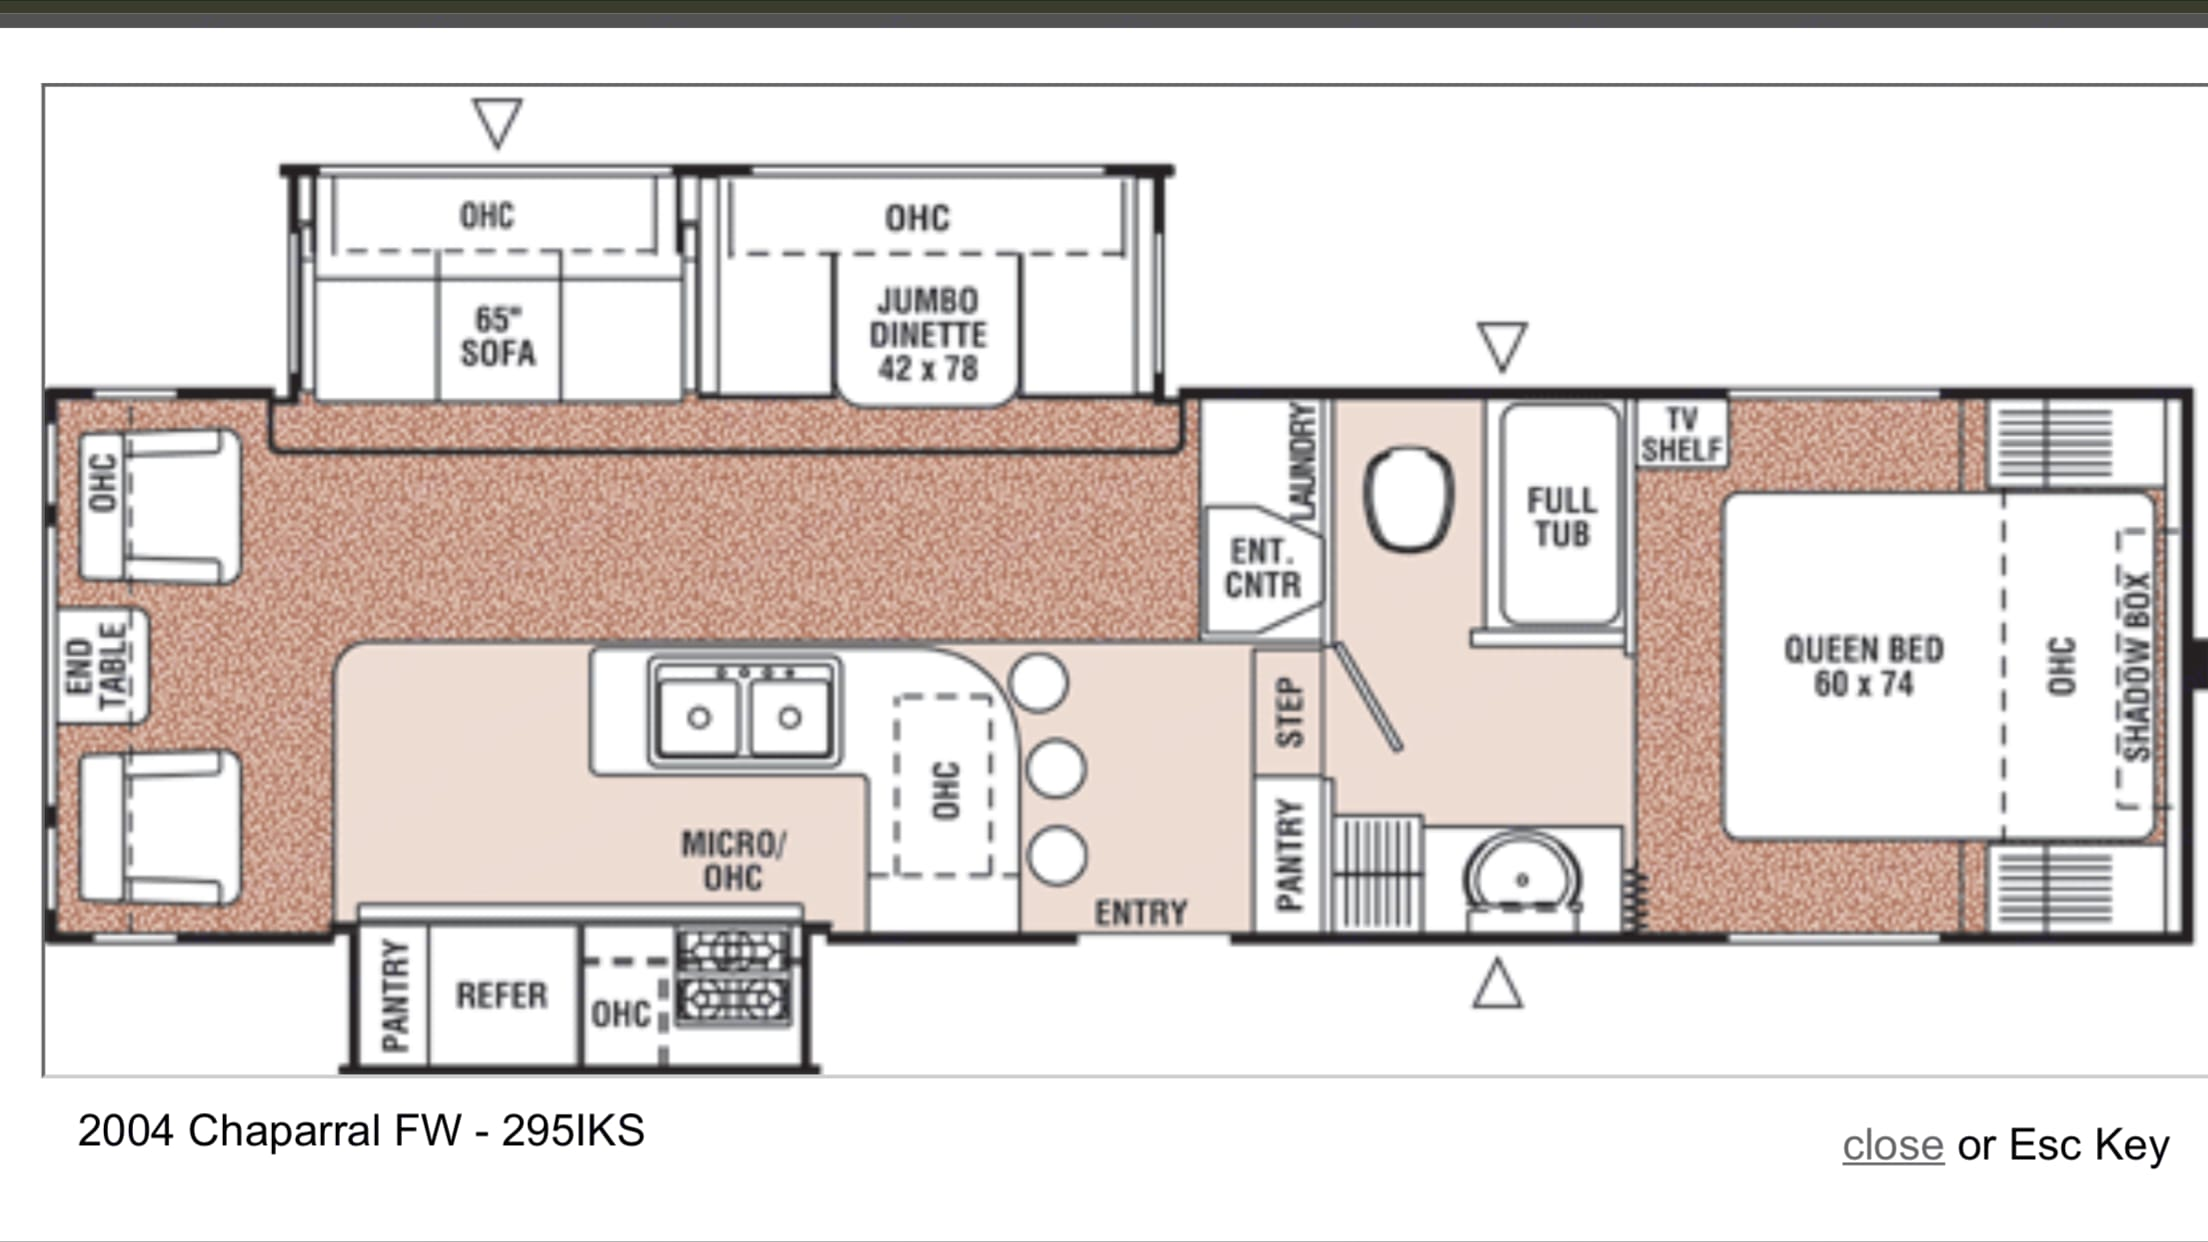 Layout of the camper. Coachmen Chaparral 2004